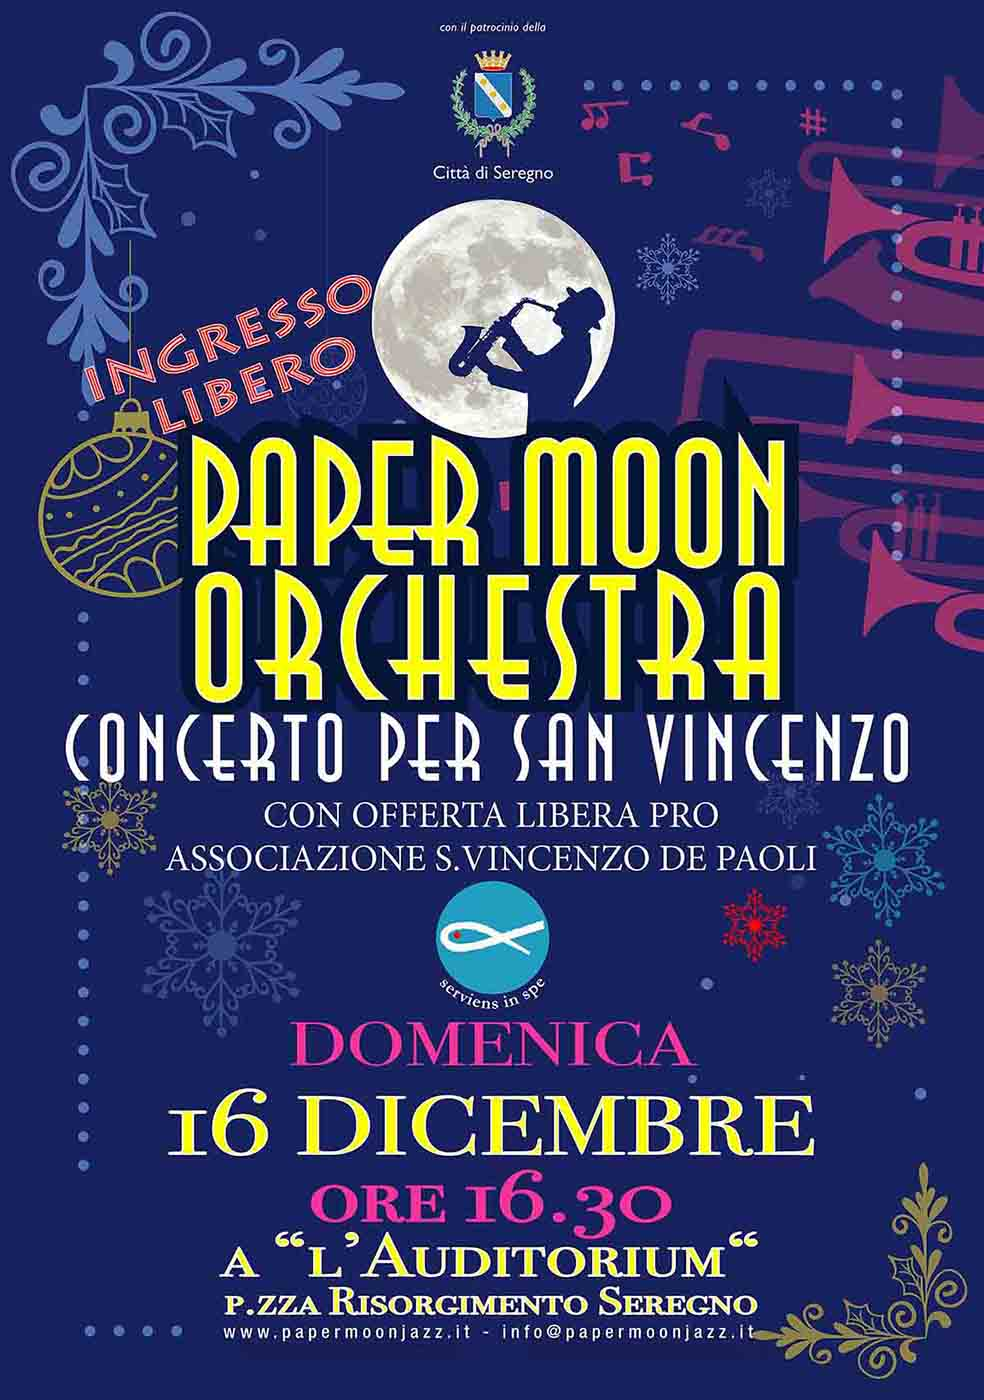 PAPER MOON ORCHESTRA